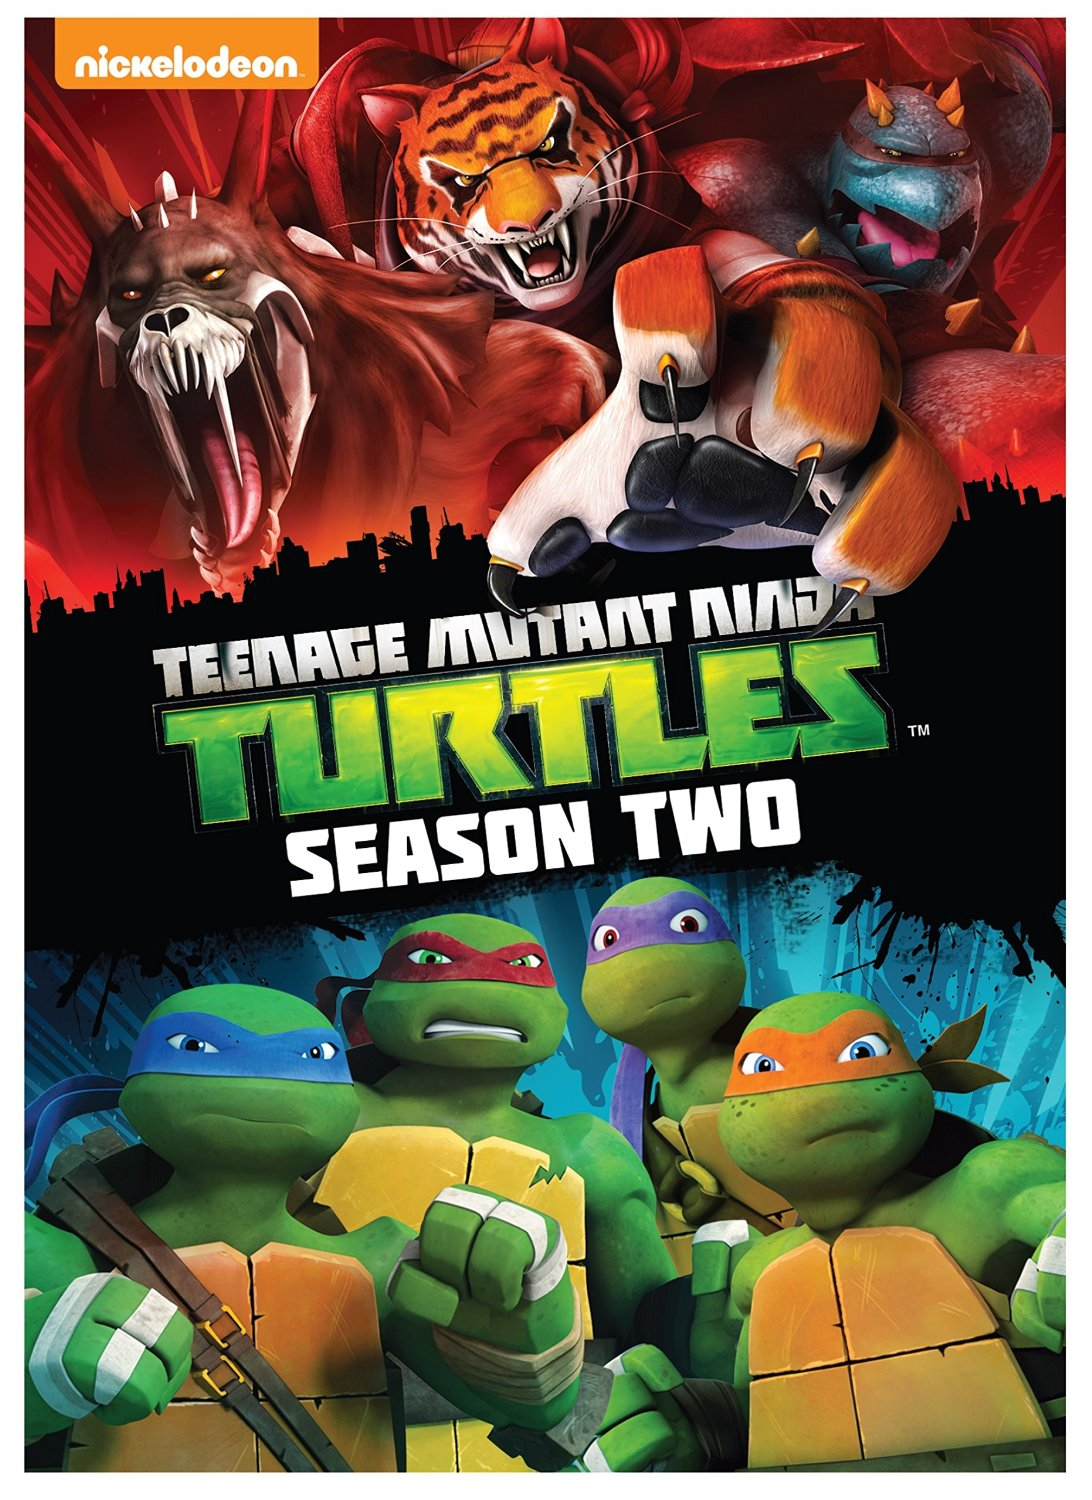 The Problem With Nickelodeon's TMNT DVDs - Teenage Mutant Ninja